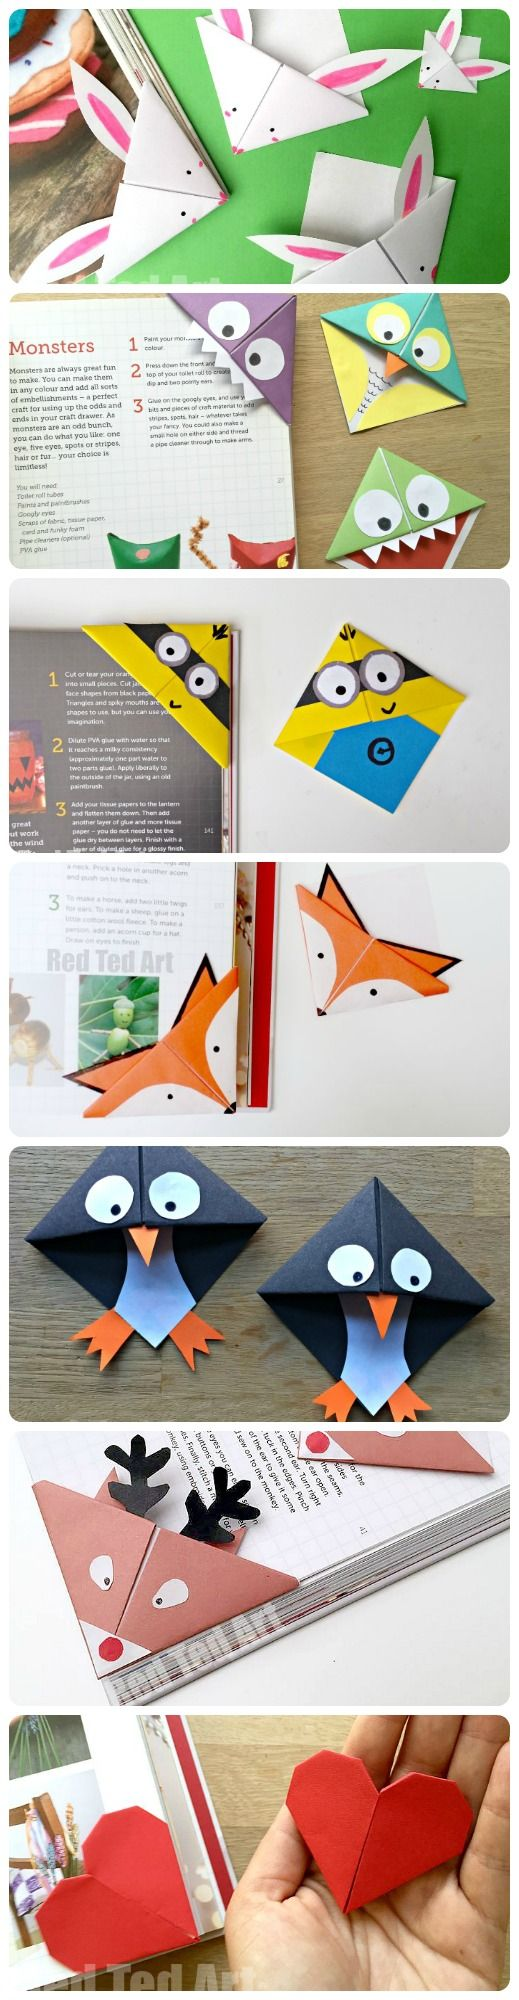 Top 15 paper folding or origami crafts for kids origami art top 15 paper folding or origami crafts for kids origami art craft activities and origami jeuxipadfo Image collections